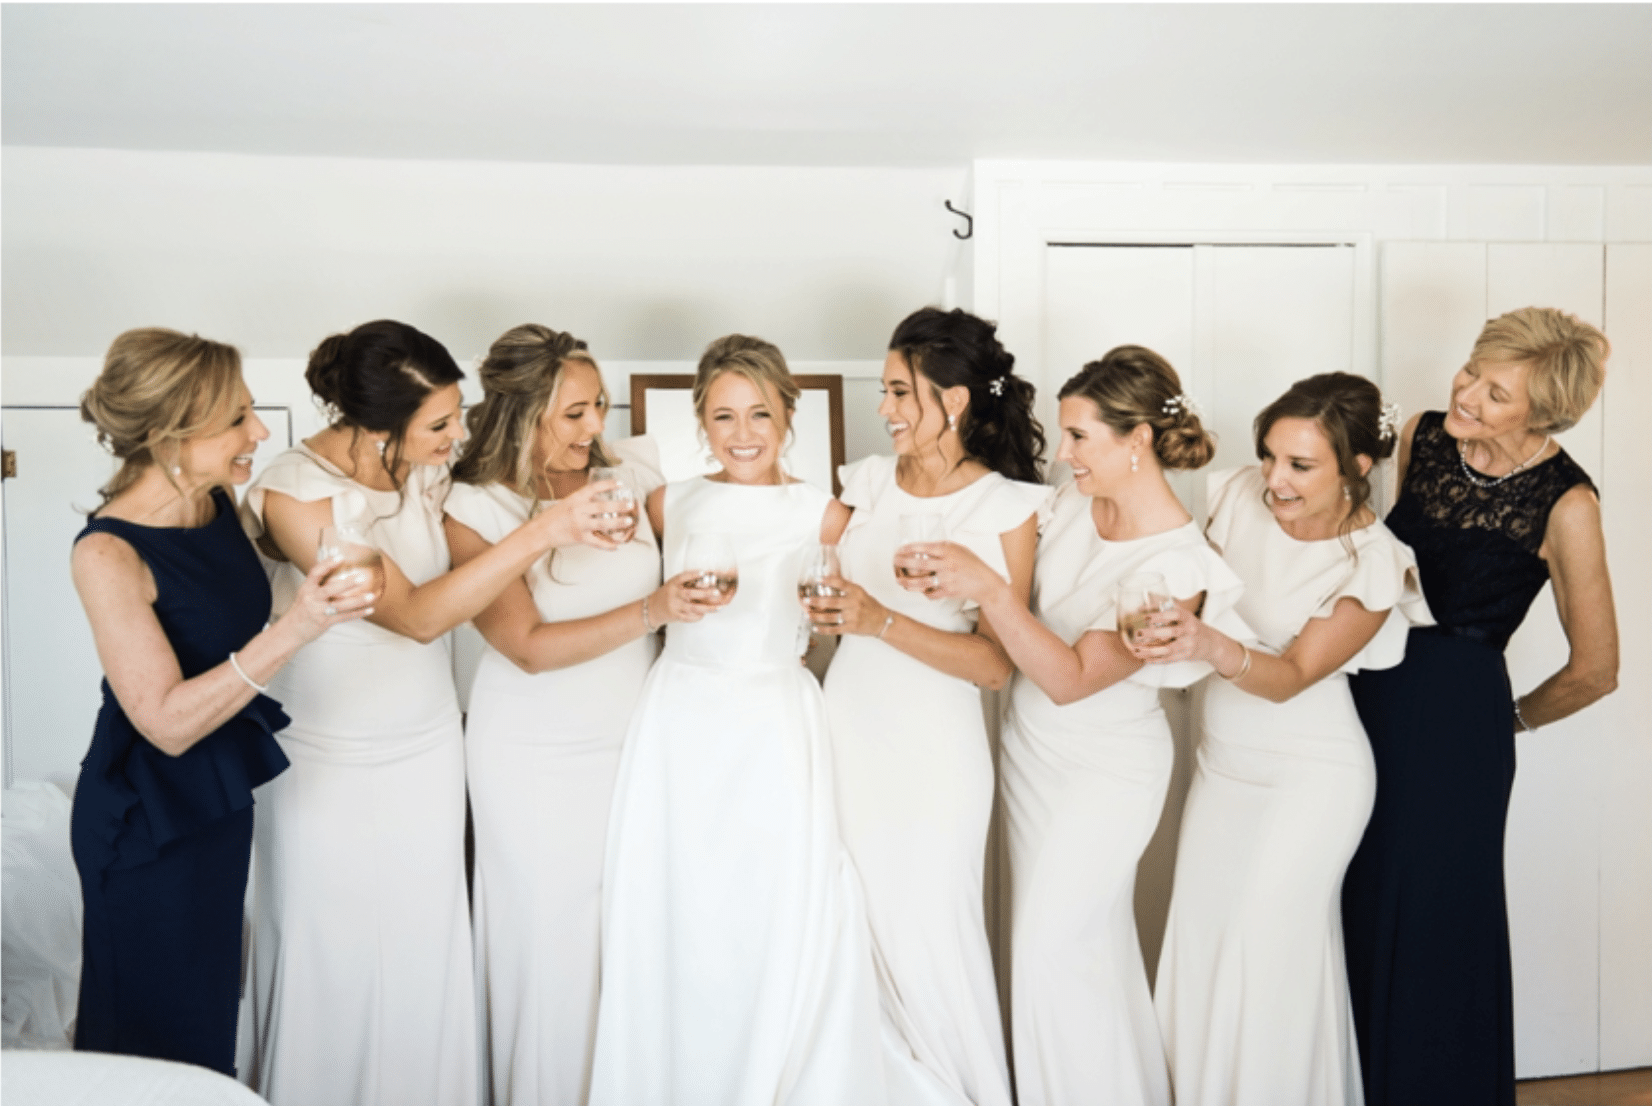 Bridal party celebrates pre-reception